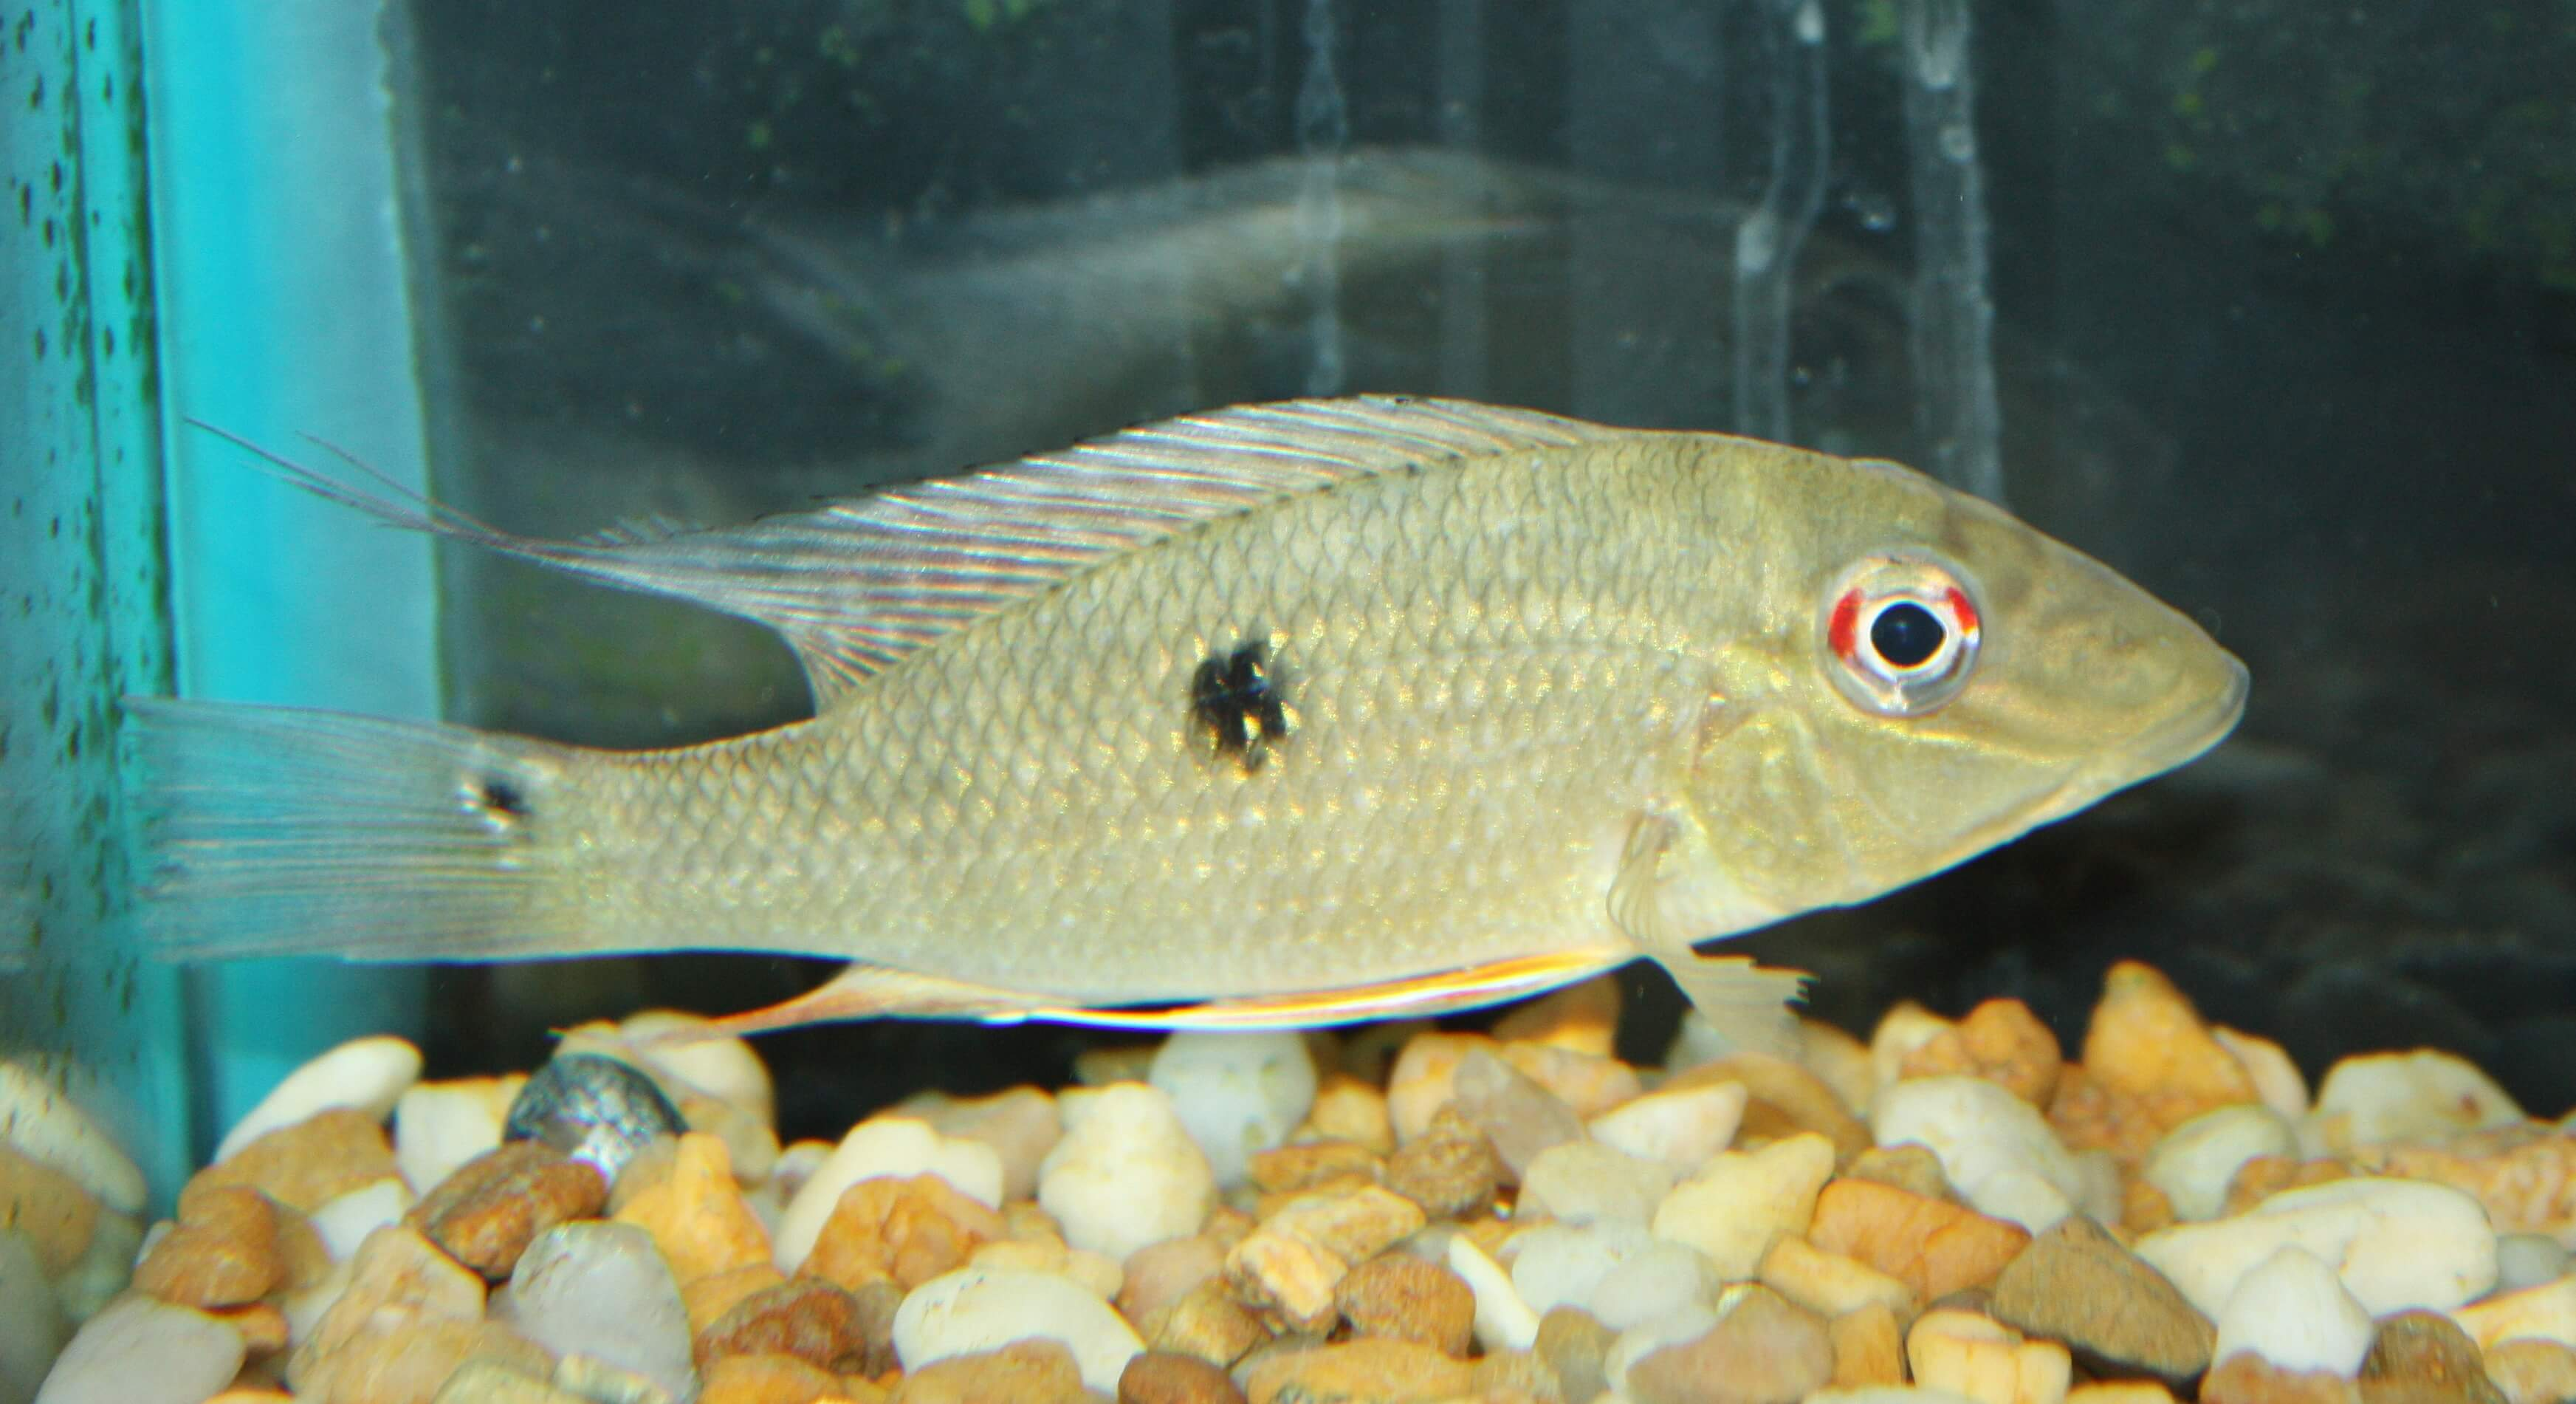 Live pond fish for sale house of fishery lovers for Garden pond fish for sale